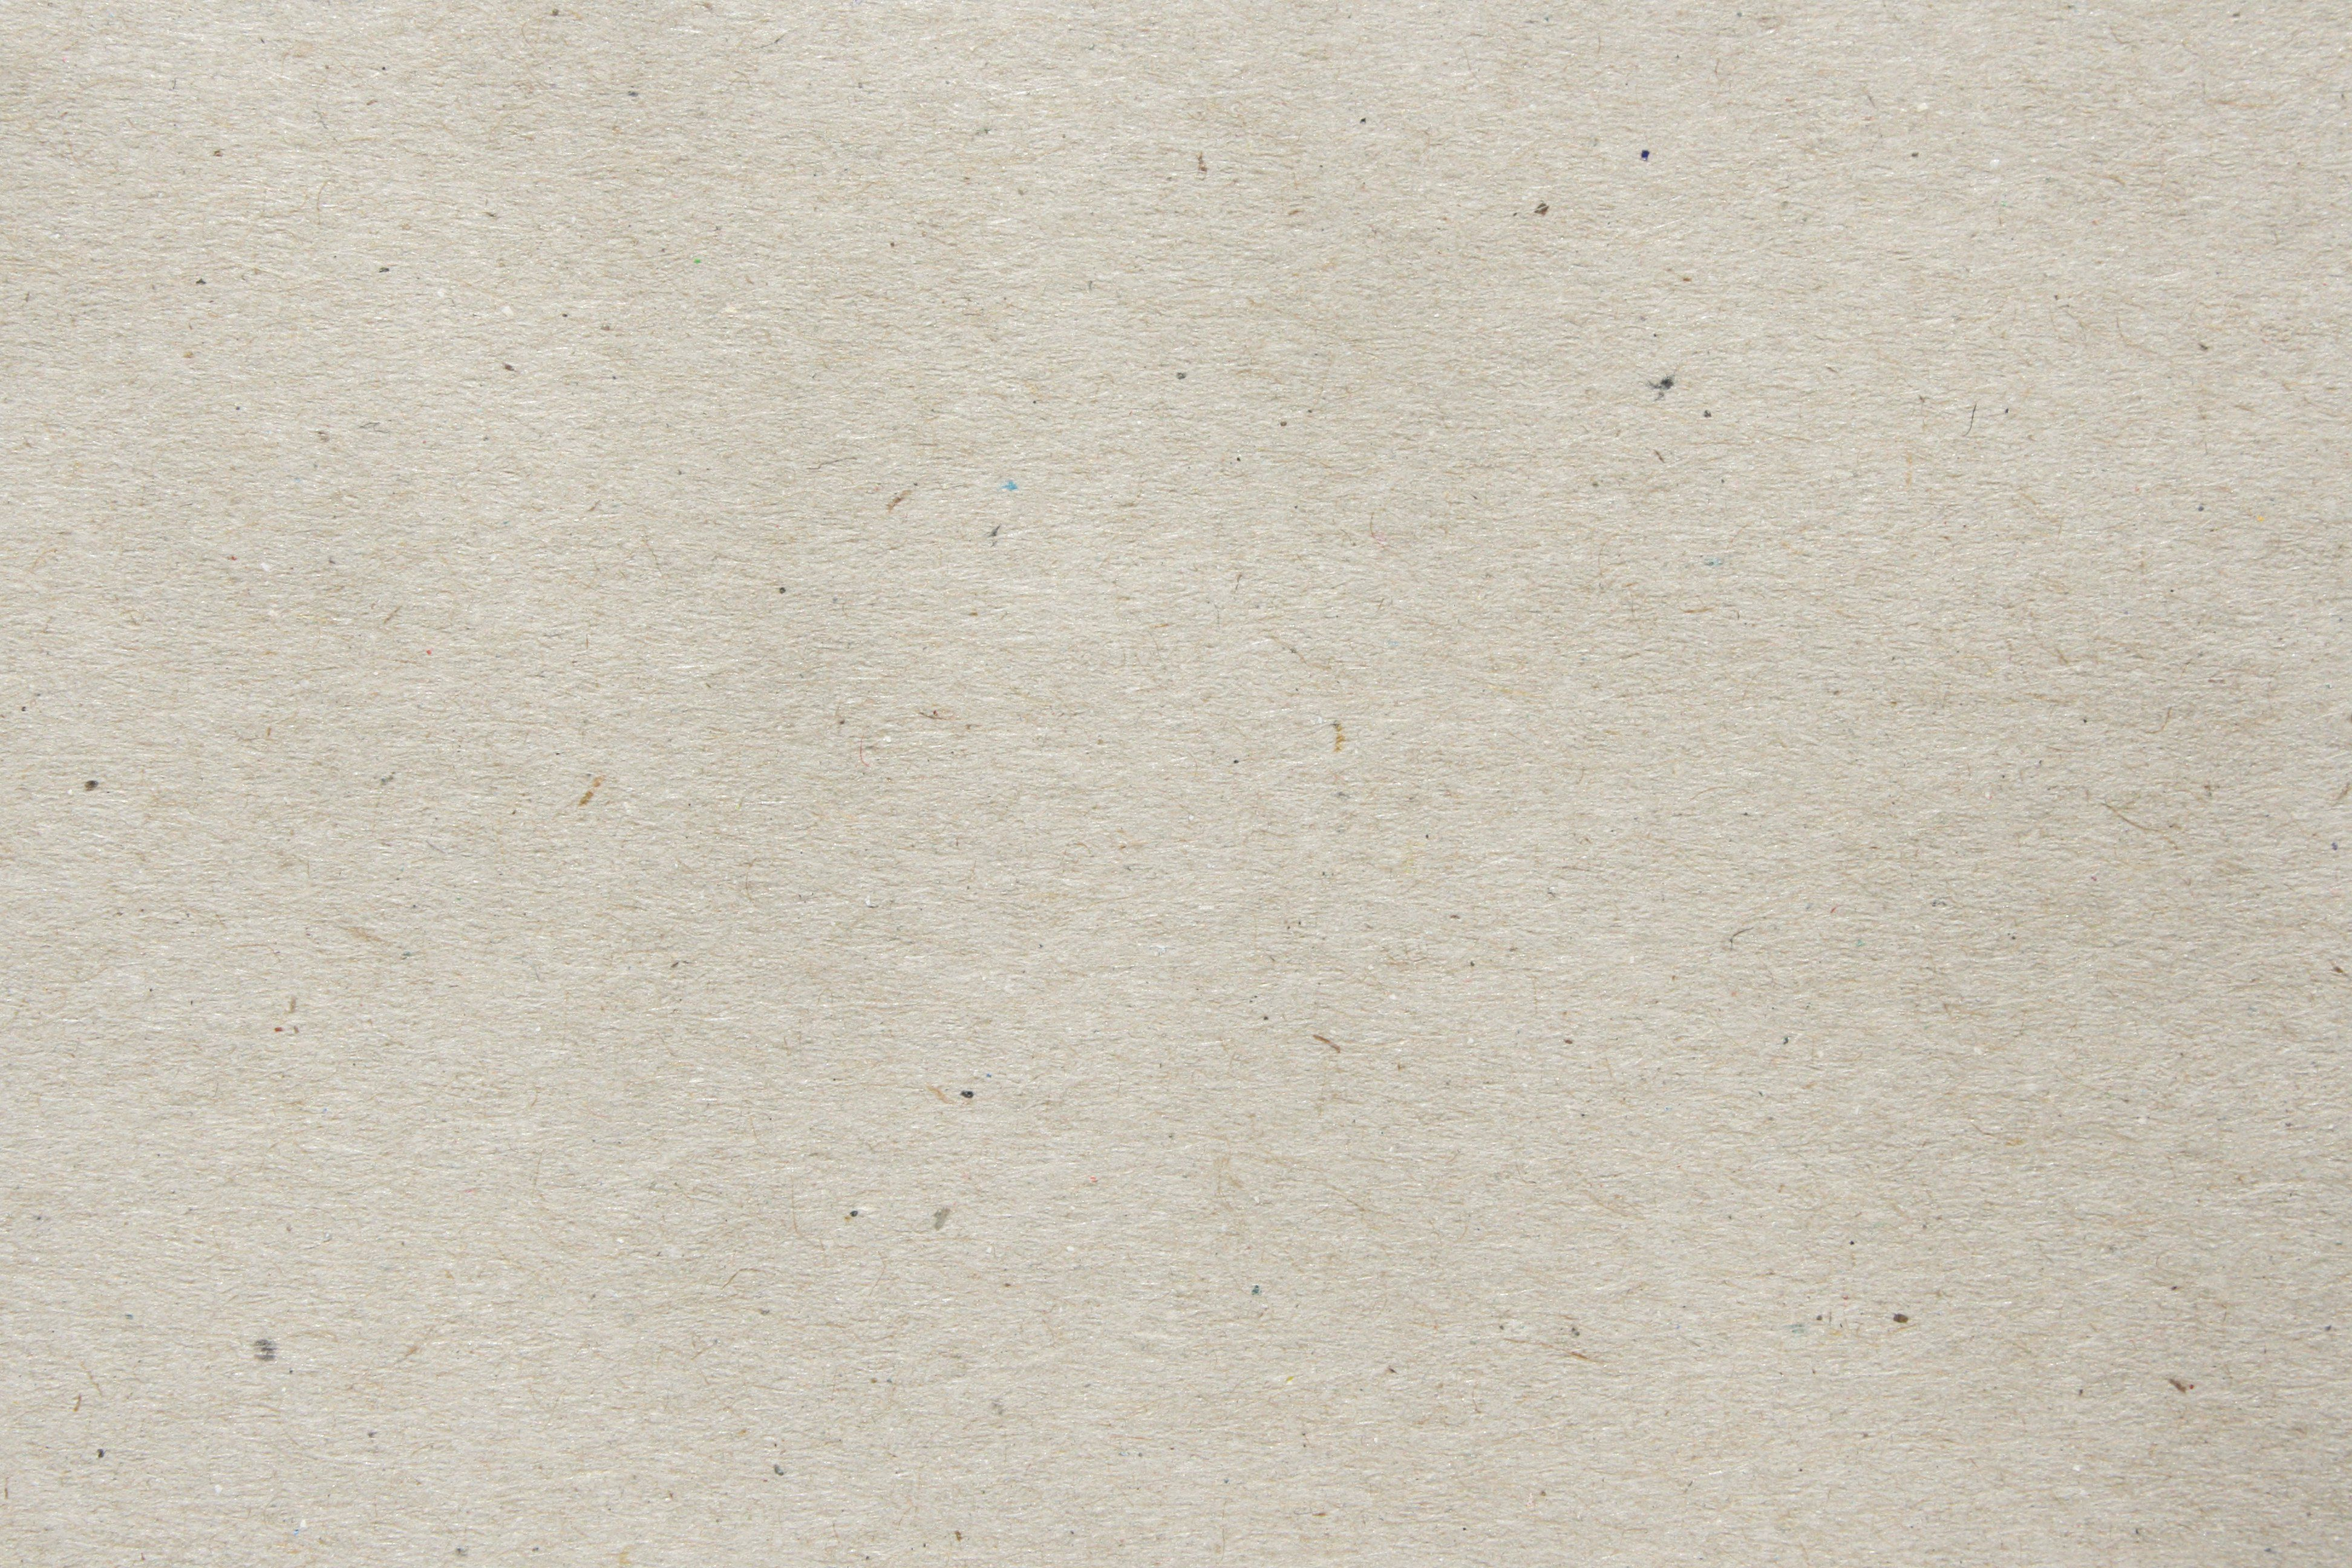 Cream Colored Paper Texture with Flecks Picture | Free Photograph ...